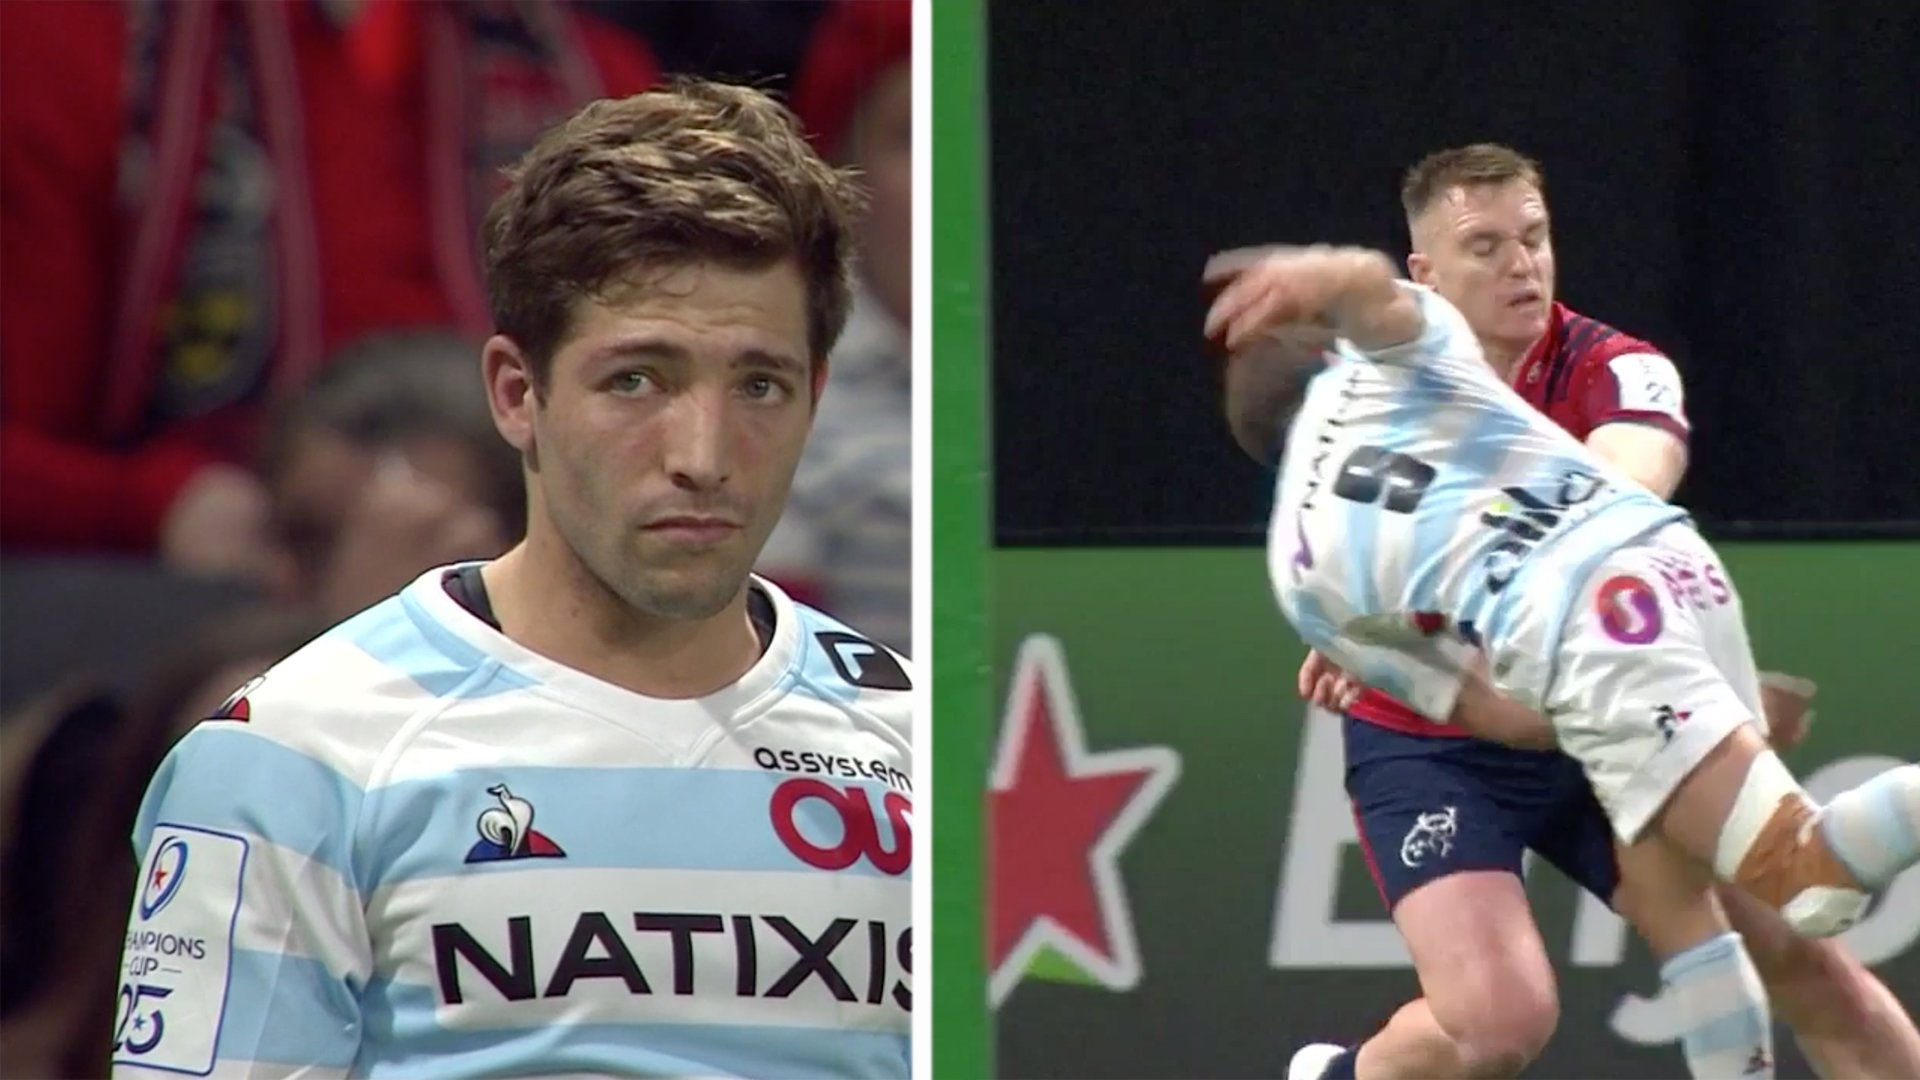 The scrum half for Racing 92 has just thrown the most disgusting pass of the century